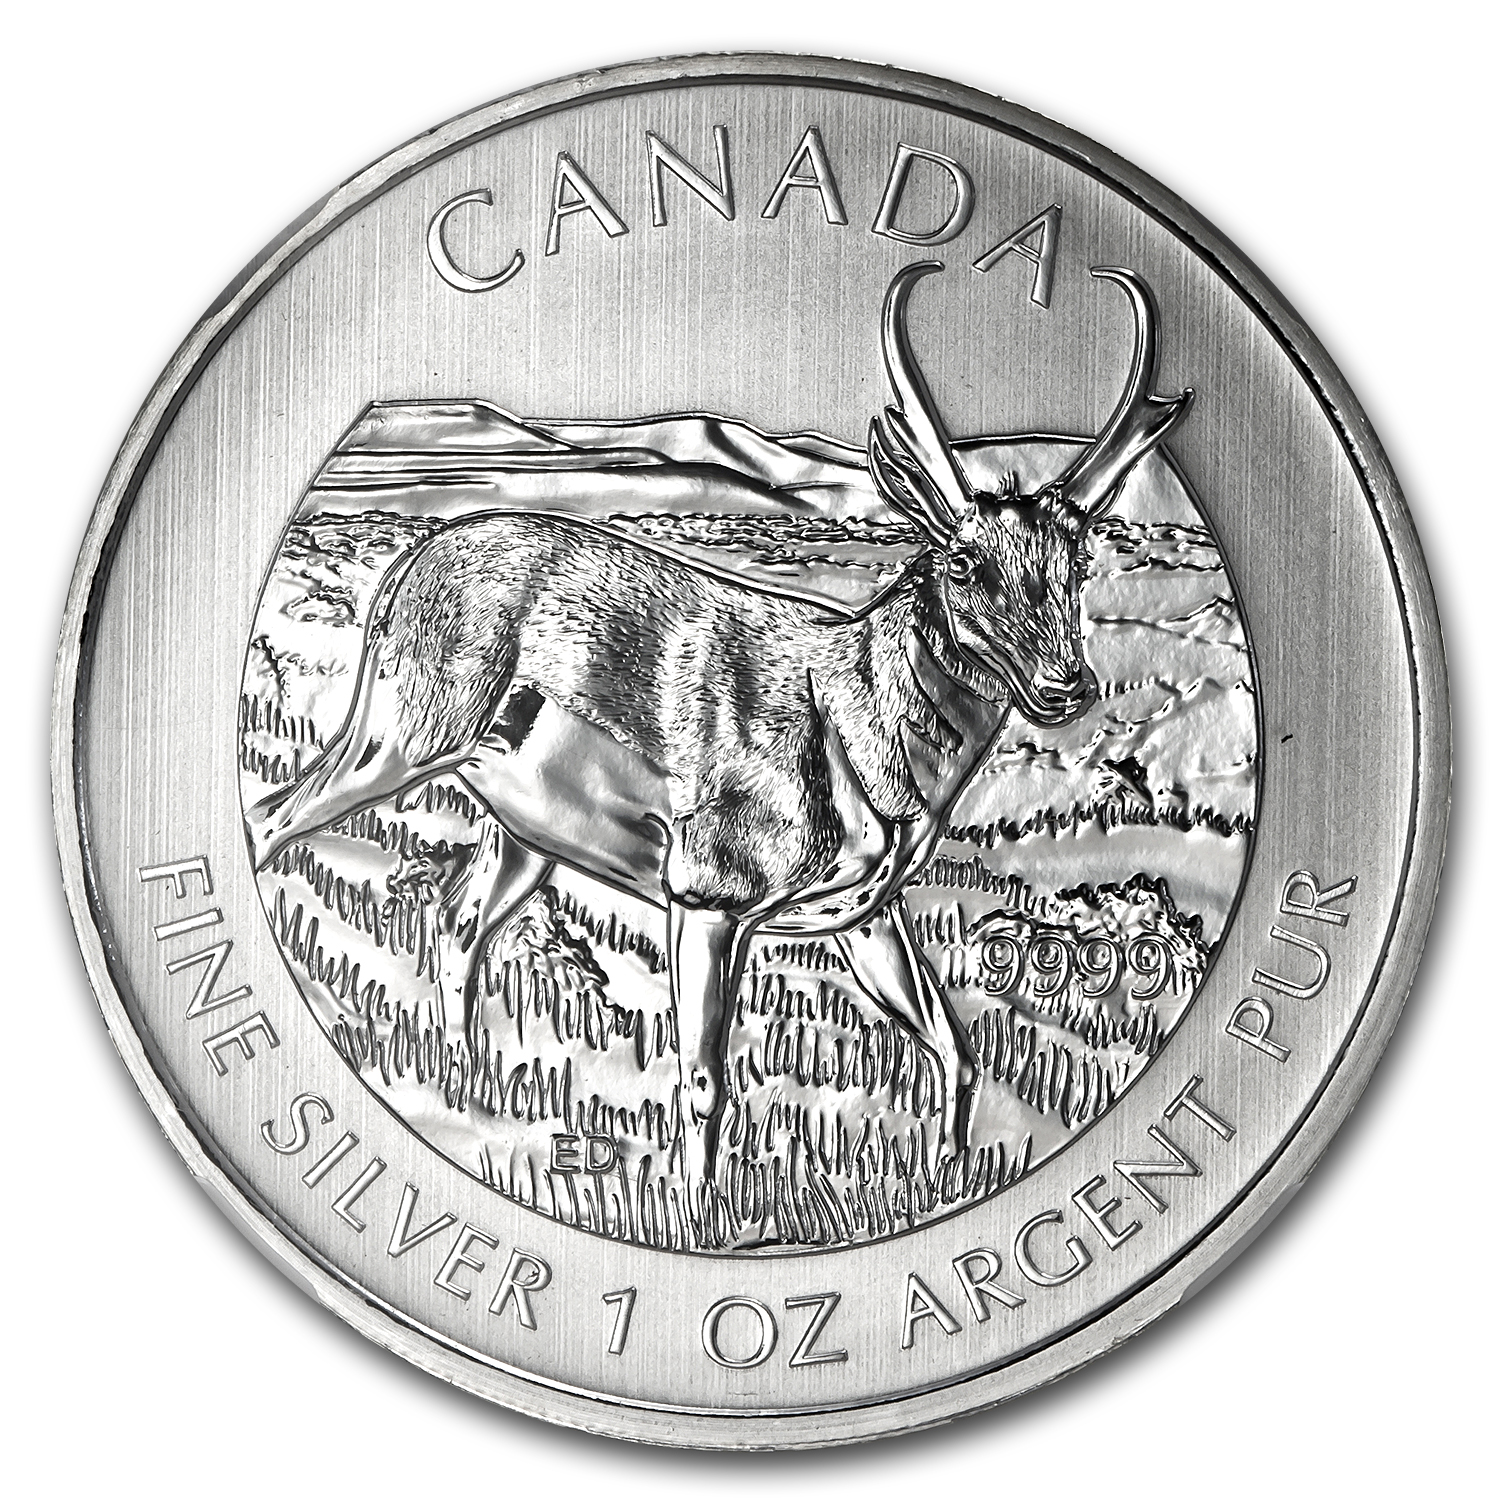 2013 1 oz Silver Canadian Wildlife Series - Antelope MS-69 NGC